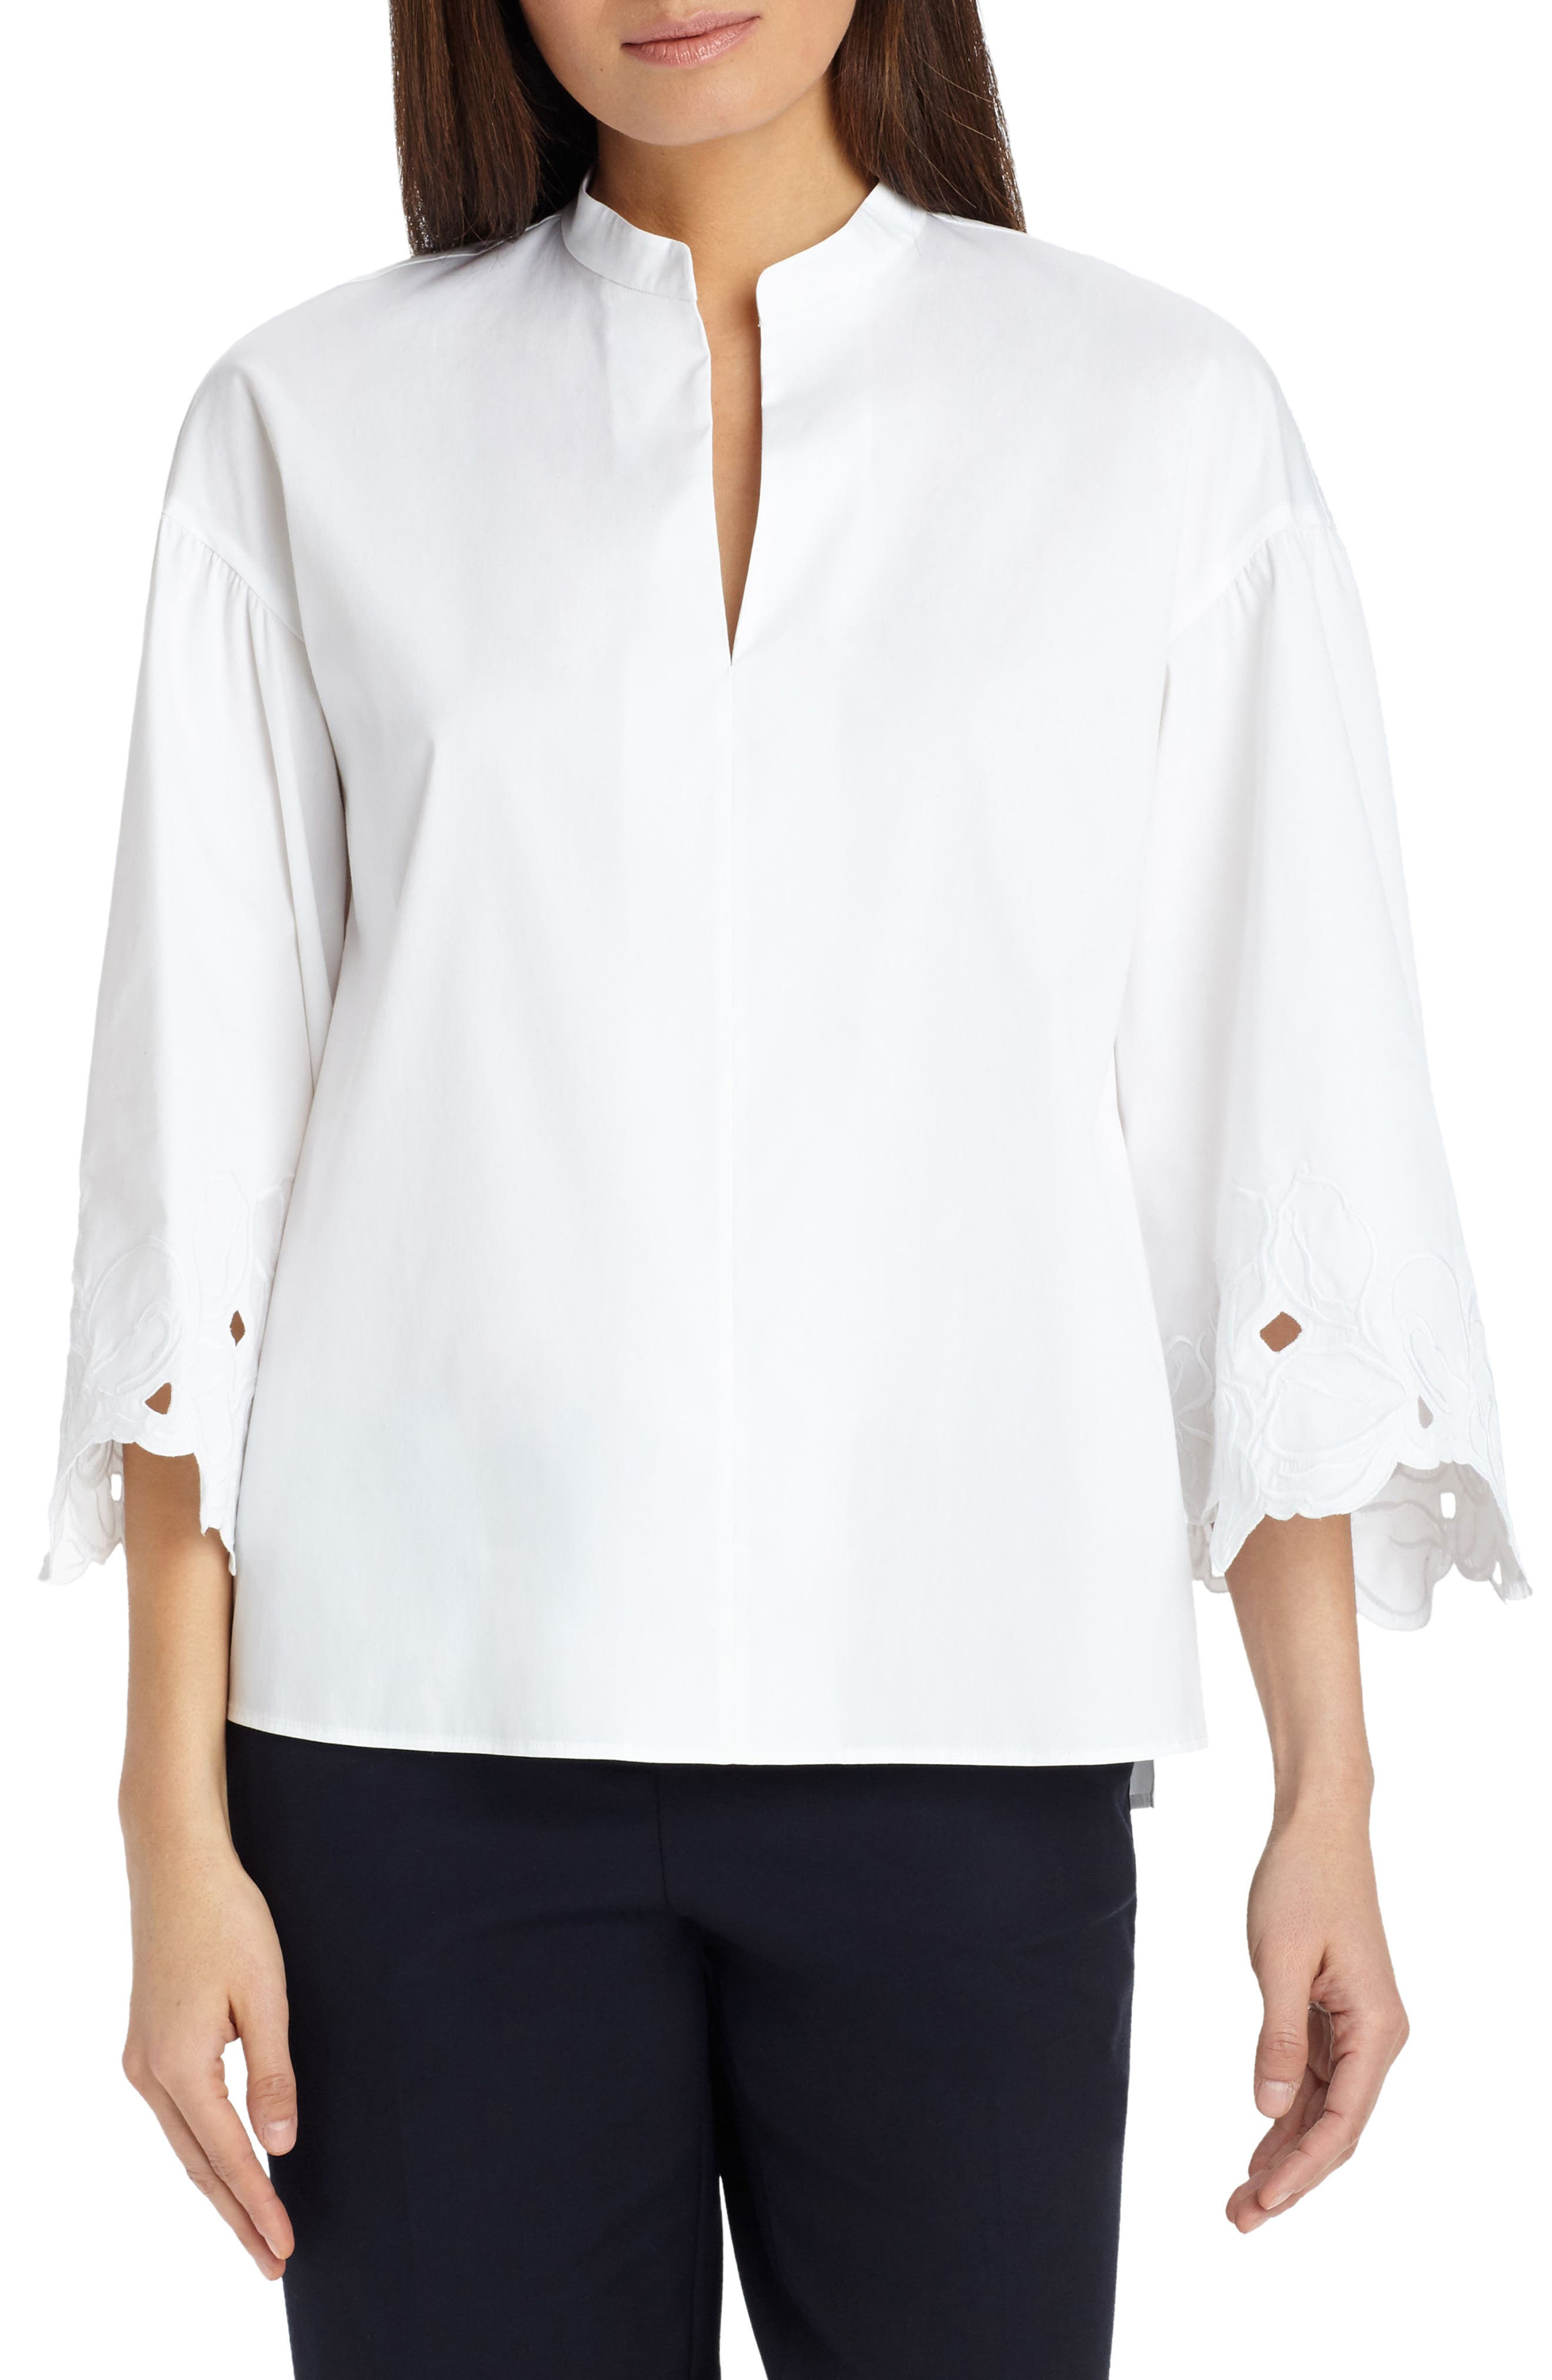 Main Image - Lafayette 148 New York Carla Embroidered Blouse